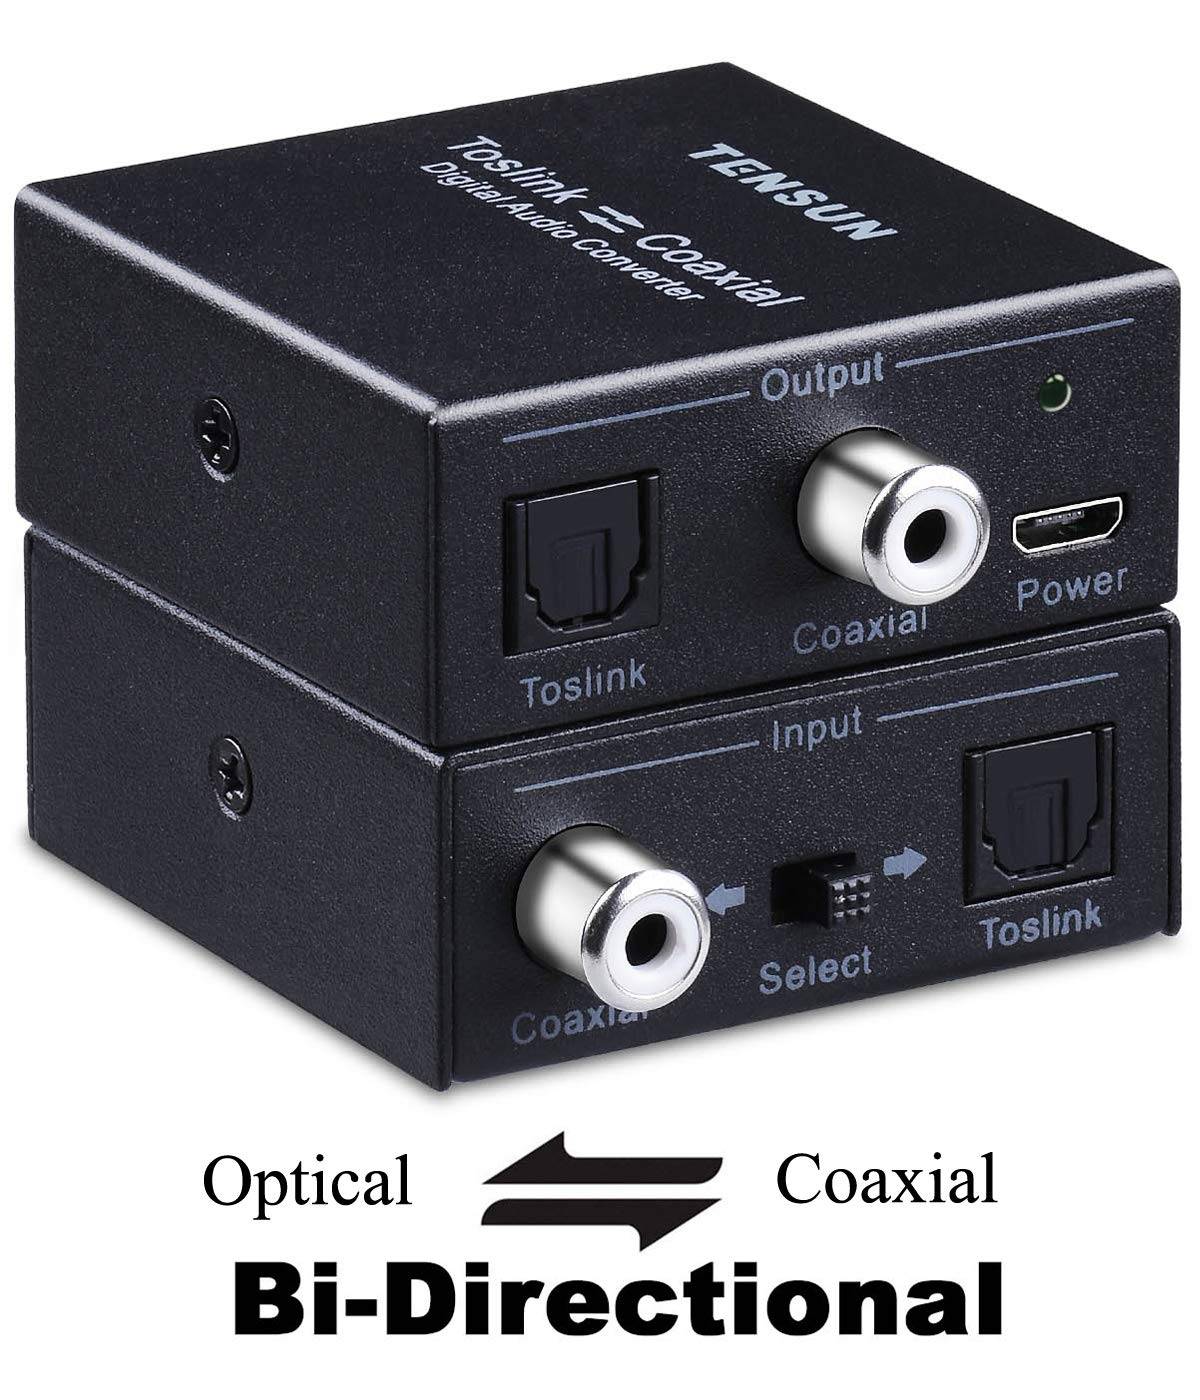 Tensun Optical to Coaxial Digital Audio Out Converter, Bi-Directional Coax Coaxial to Toslink SPDIF Optical Adapter Repeater 24bit/192K HD Sampling (Optical-to-coaxial and Coaxial-to-Optical)